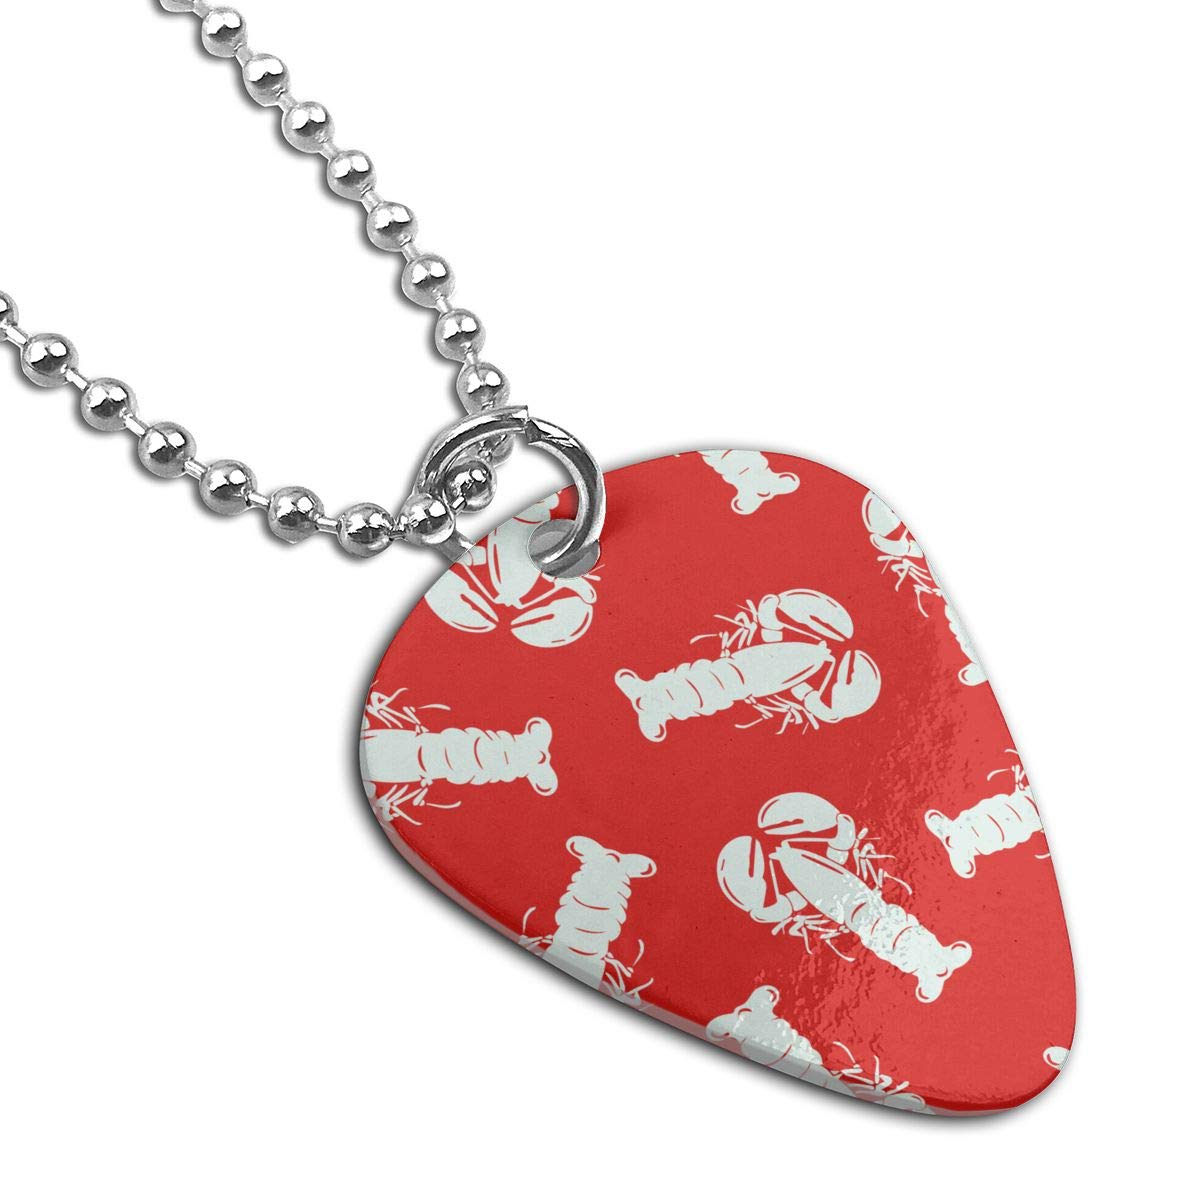 Lobster Red Guitar Pick Necklace Unique Custom Fashion Pet Card Keychain